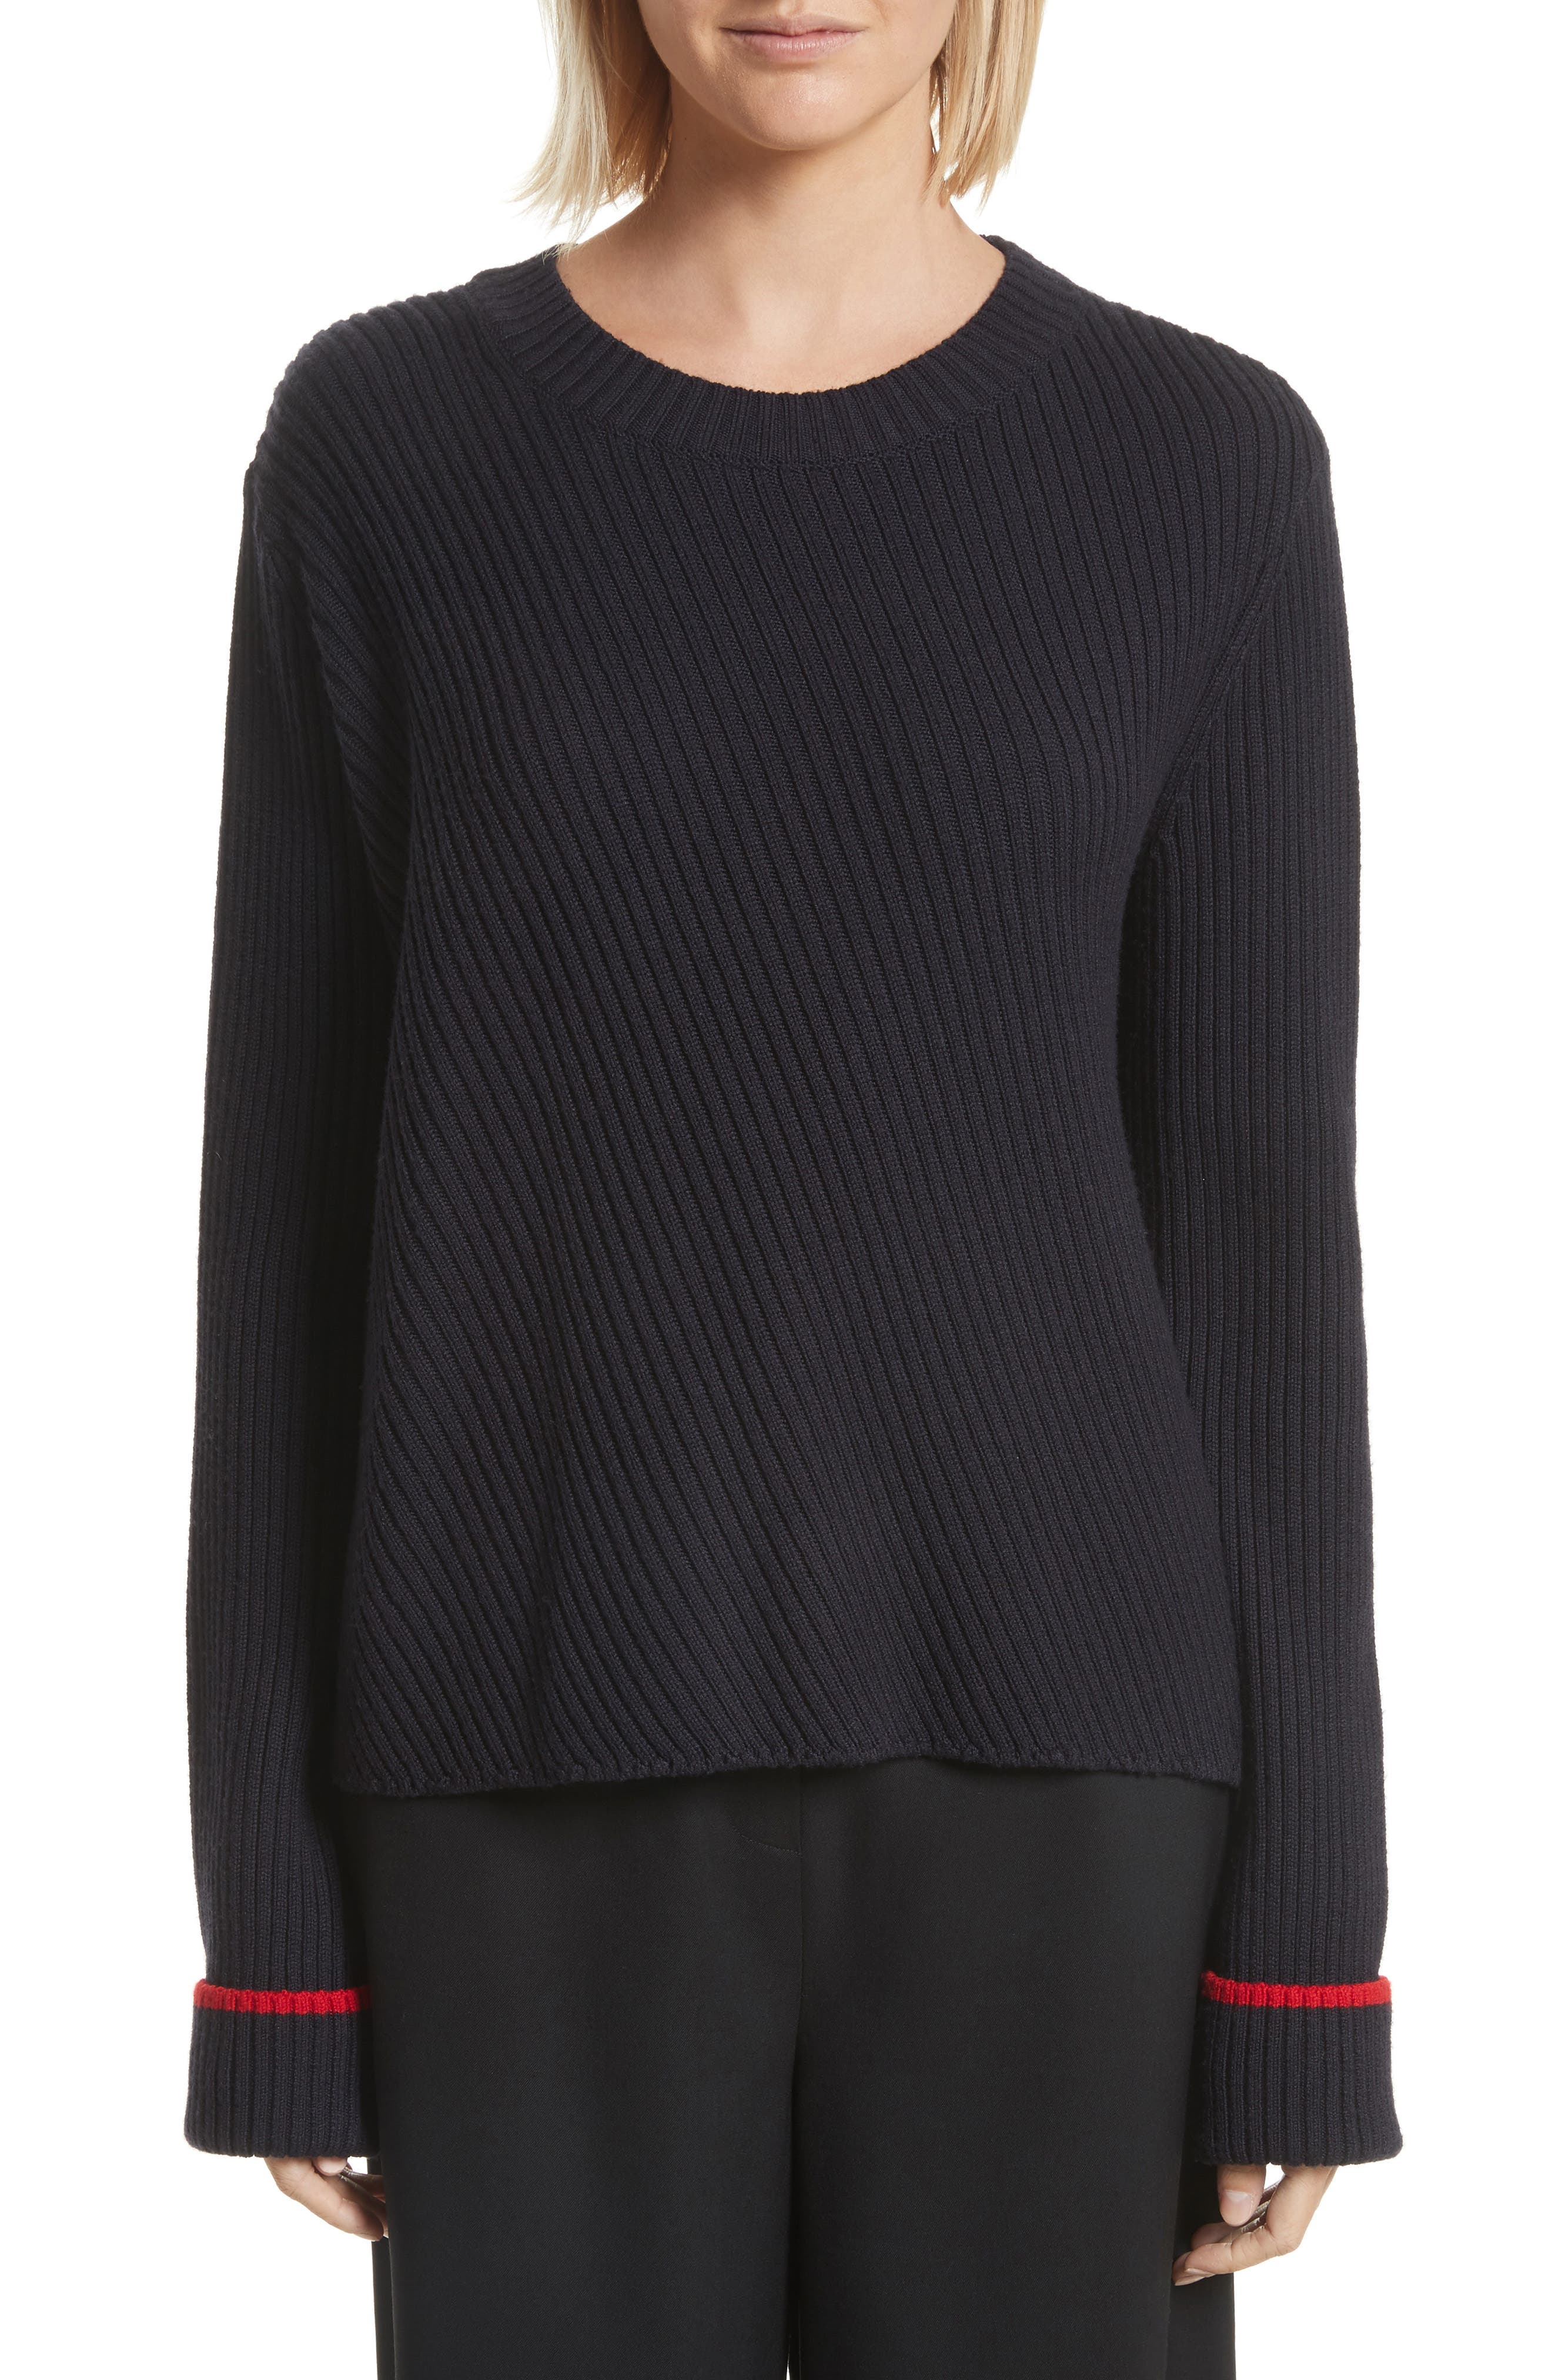 GREY Jason Wu Contrast Trim Merino Wool Sweater